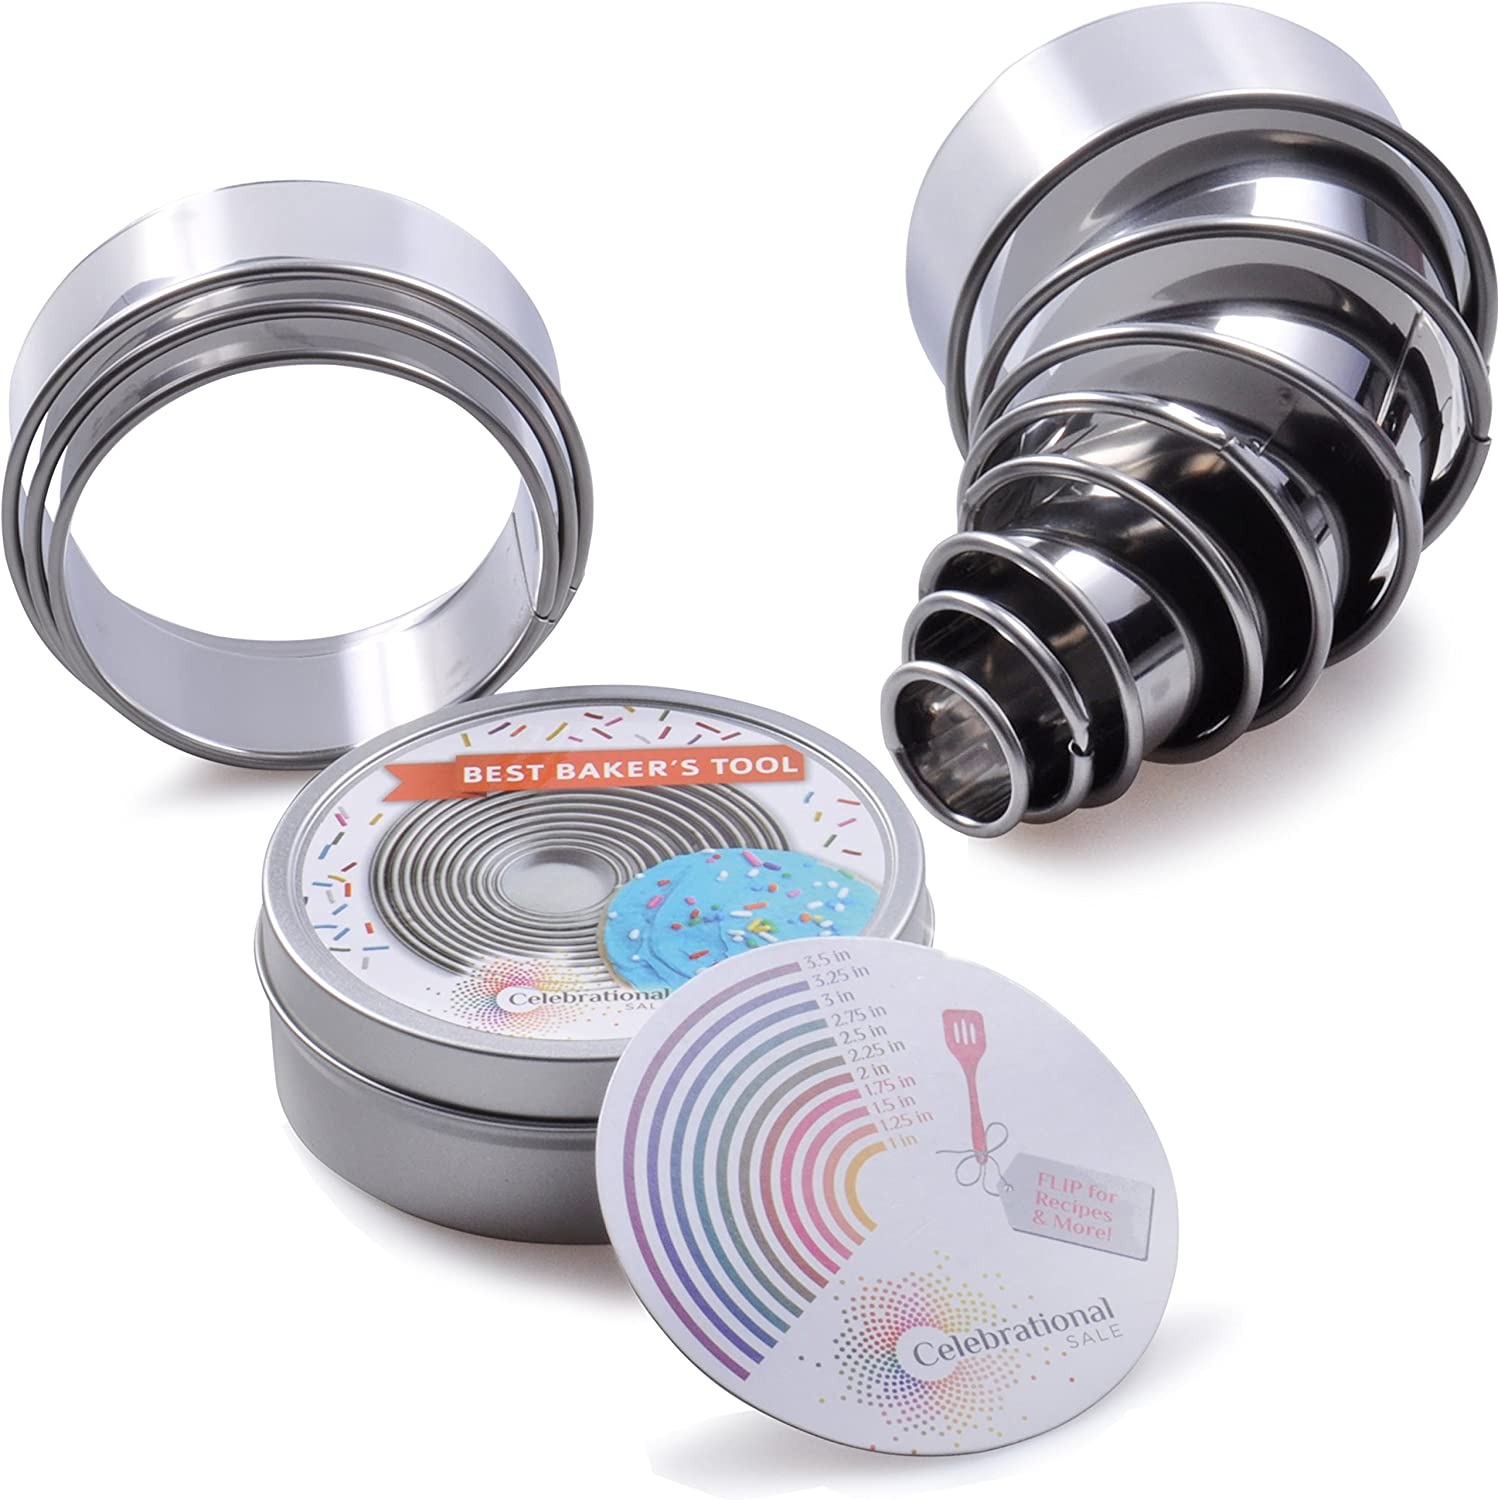 Celebrational Sale 11 Pieces Round Stainless Steel Cookie Cutter Set